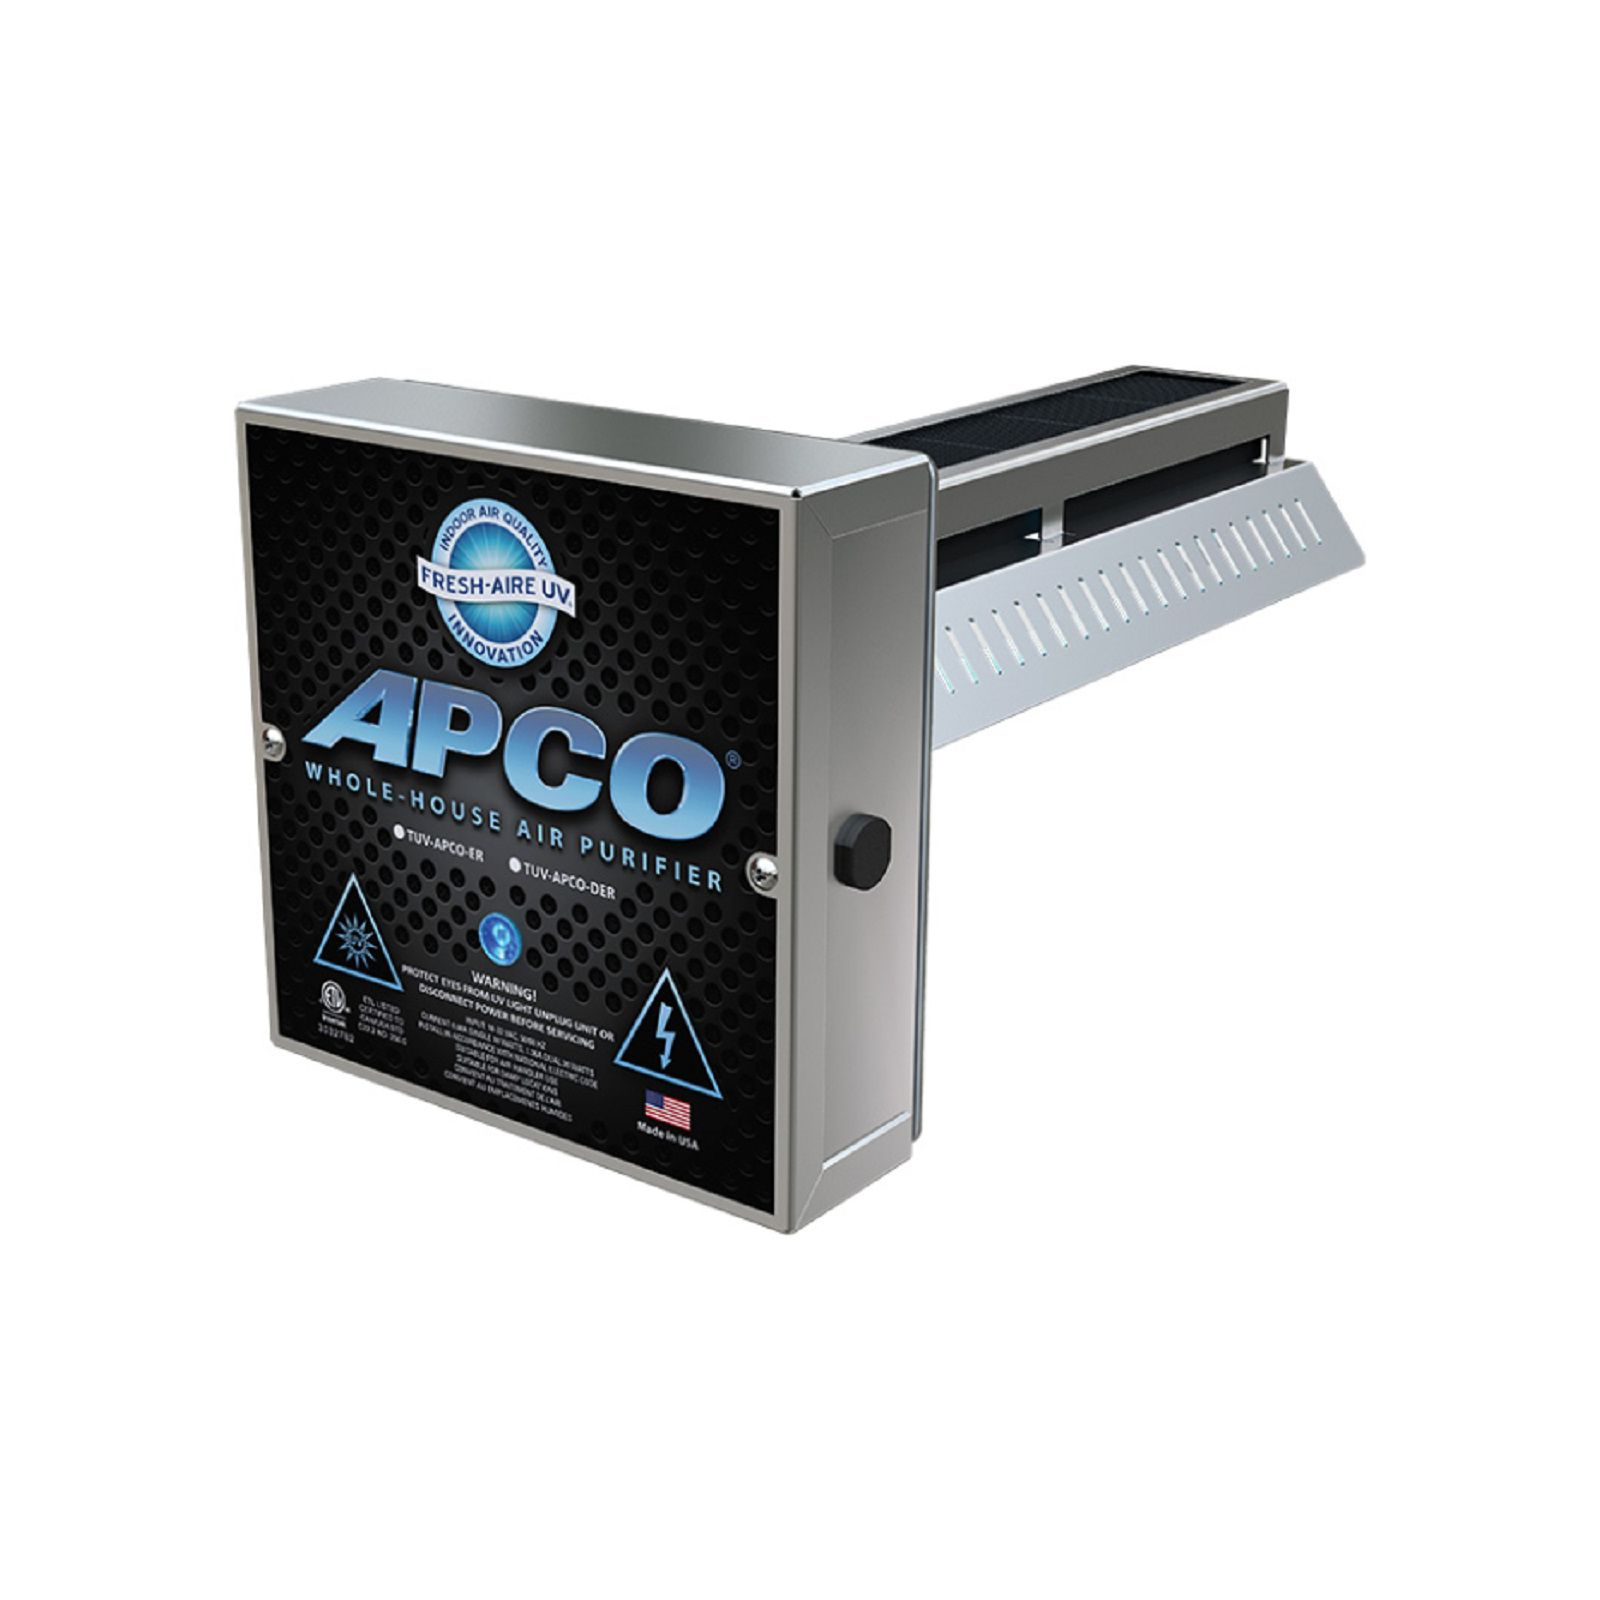 Triatomic TUV-APCO-ER - One Year Lamp (18-32 VAC series) APCO In-Duct